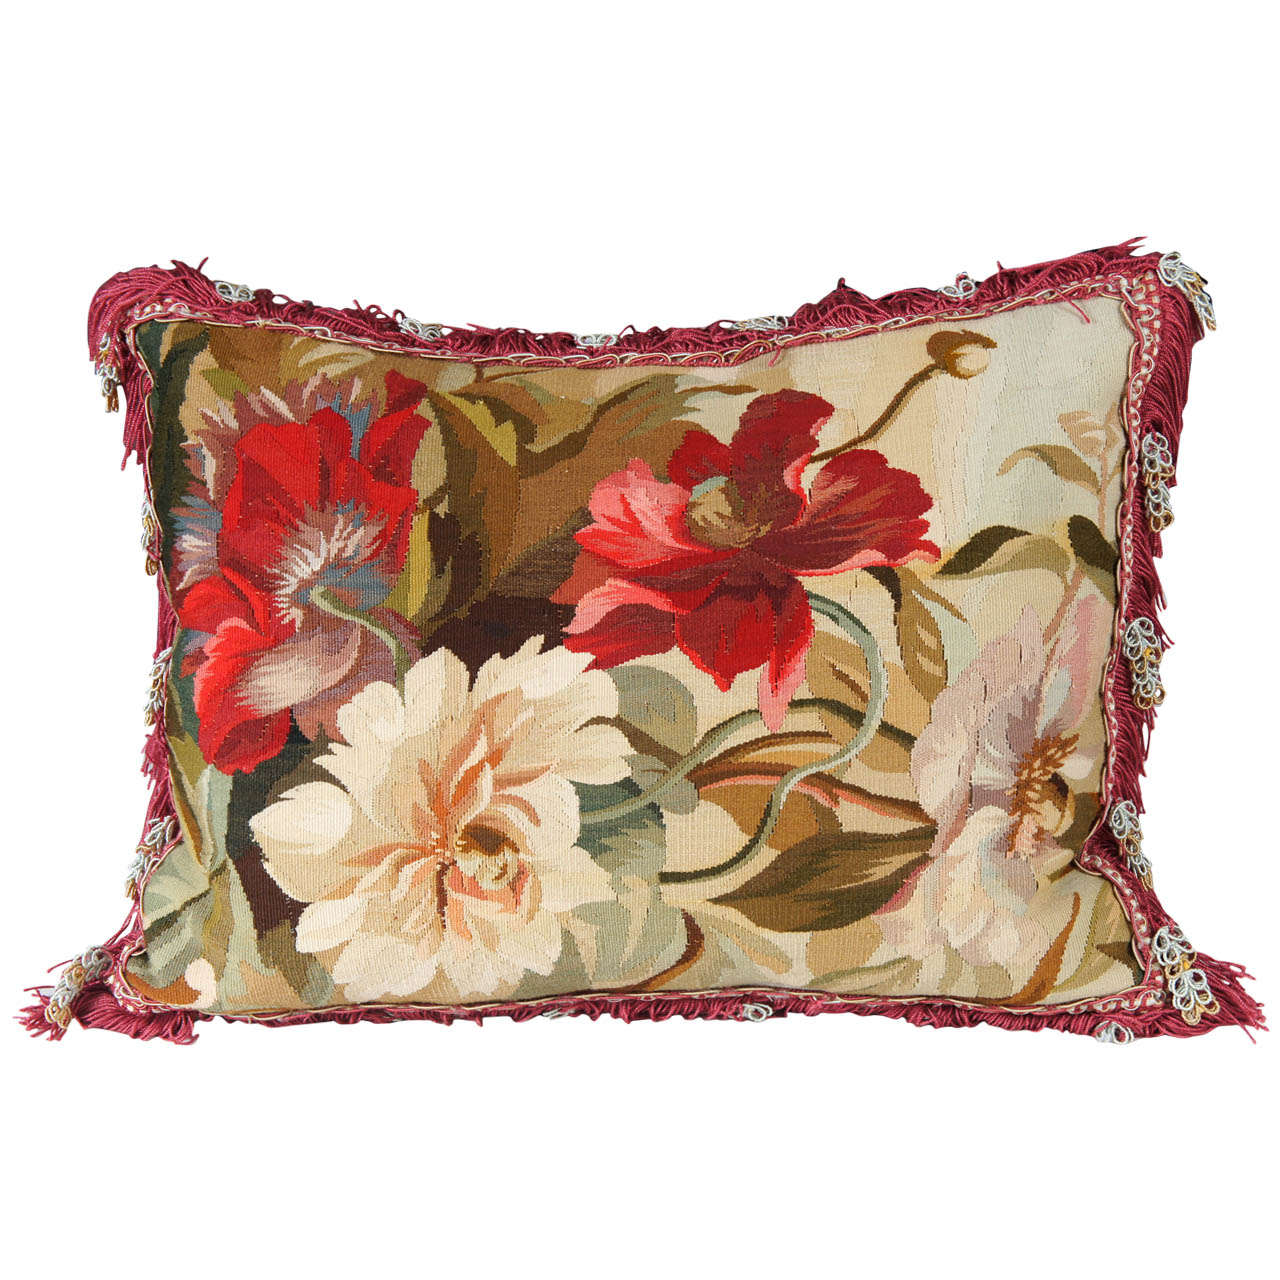 Floral Tapestry Needlepoint Pillow At 1stdibs